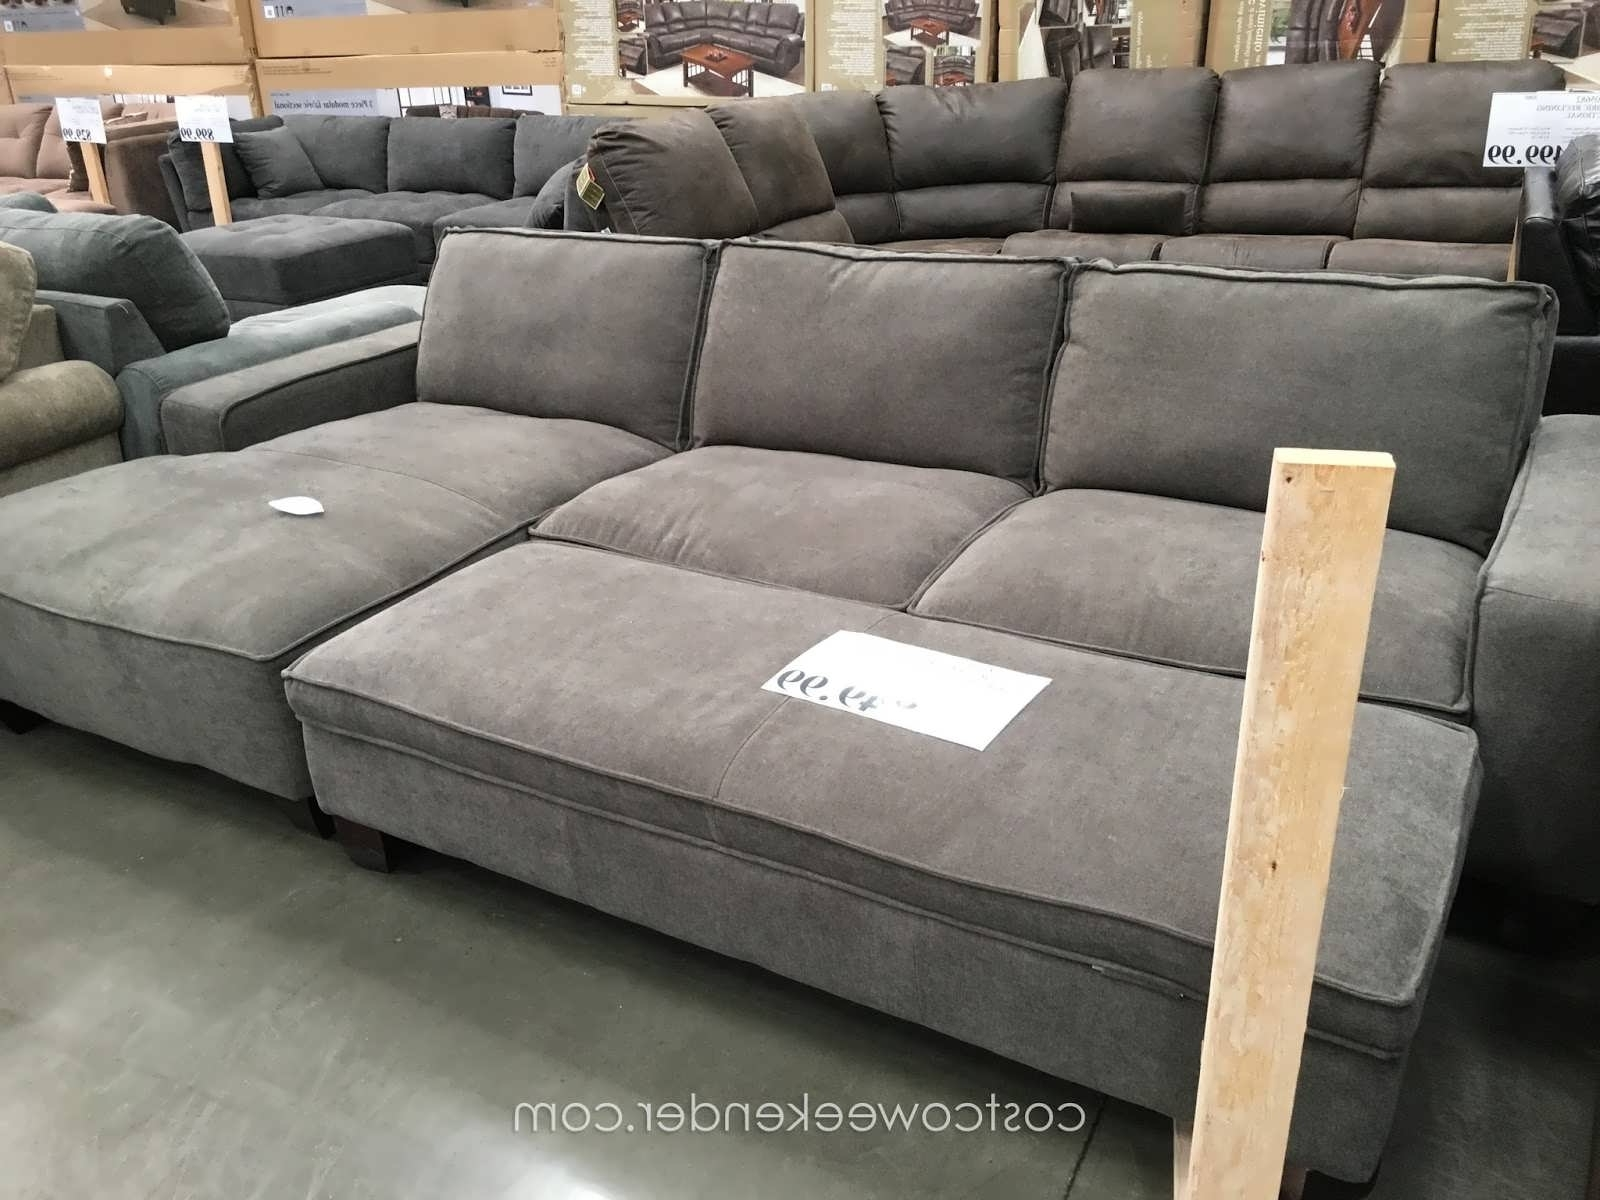 Best And Newest Sofa : L Sofa Modular Sectional Sofa Couch With Chaise Sectional Intended For Deep Sofas With Chaise (View 1 of 15)